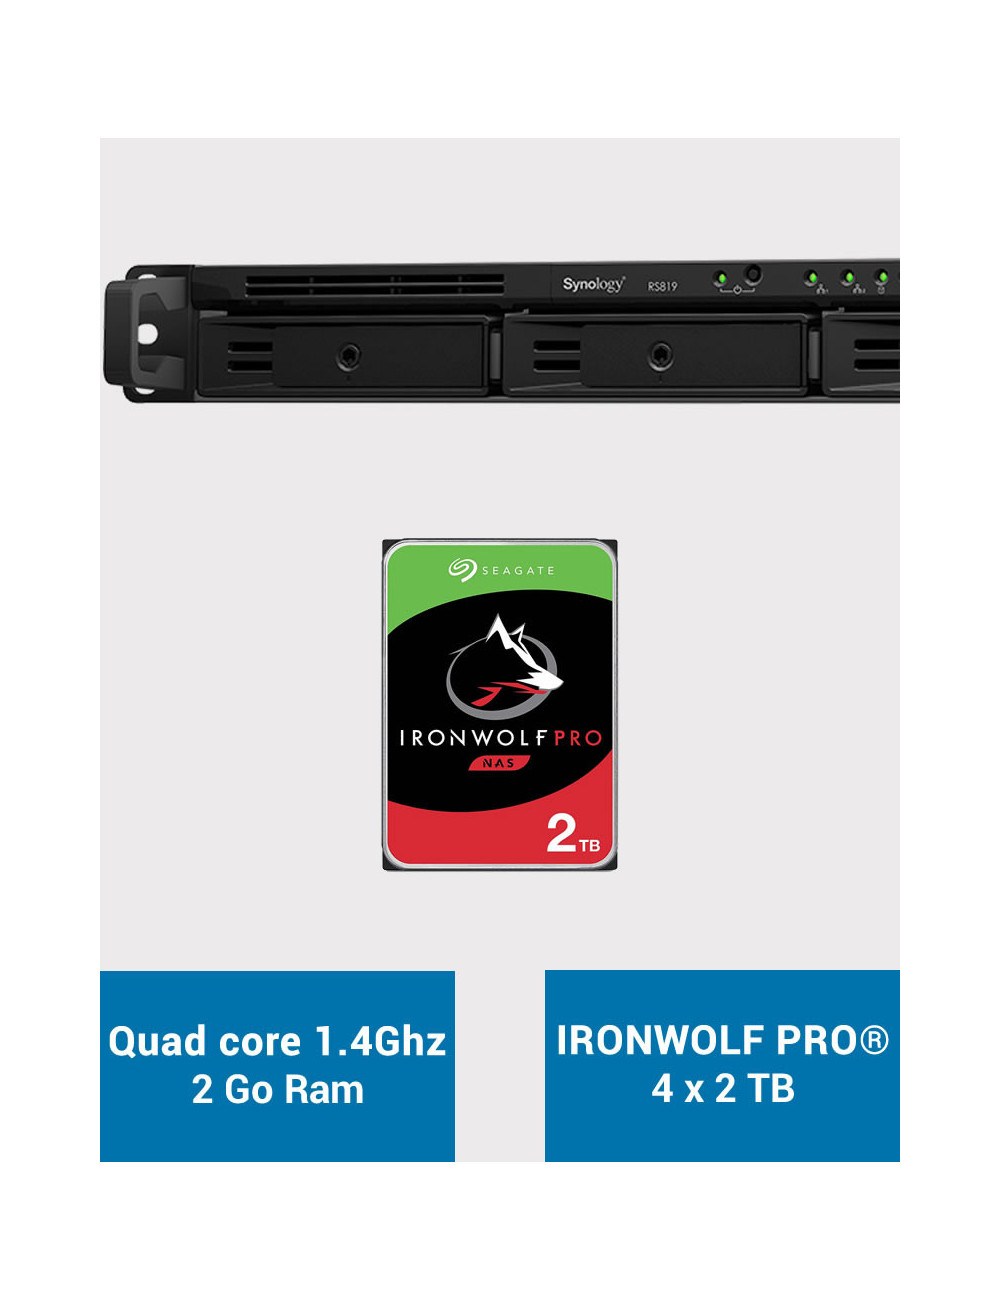 Synology RS819 Serveur NAS IRONWOLF PRO 8To (4x2To)